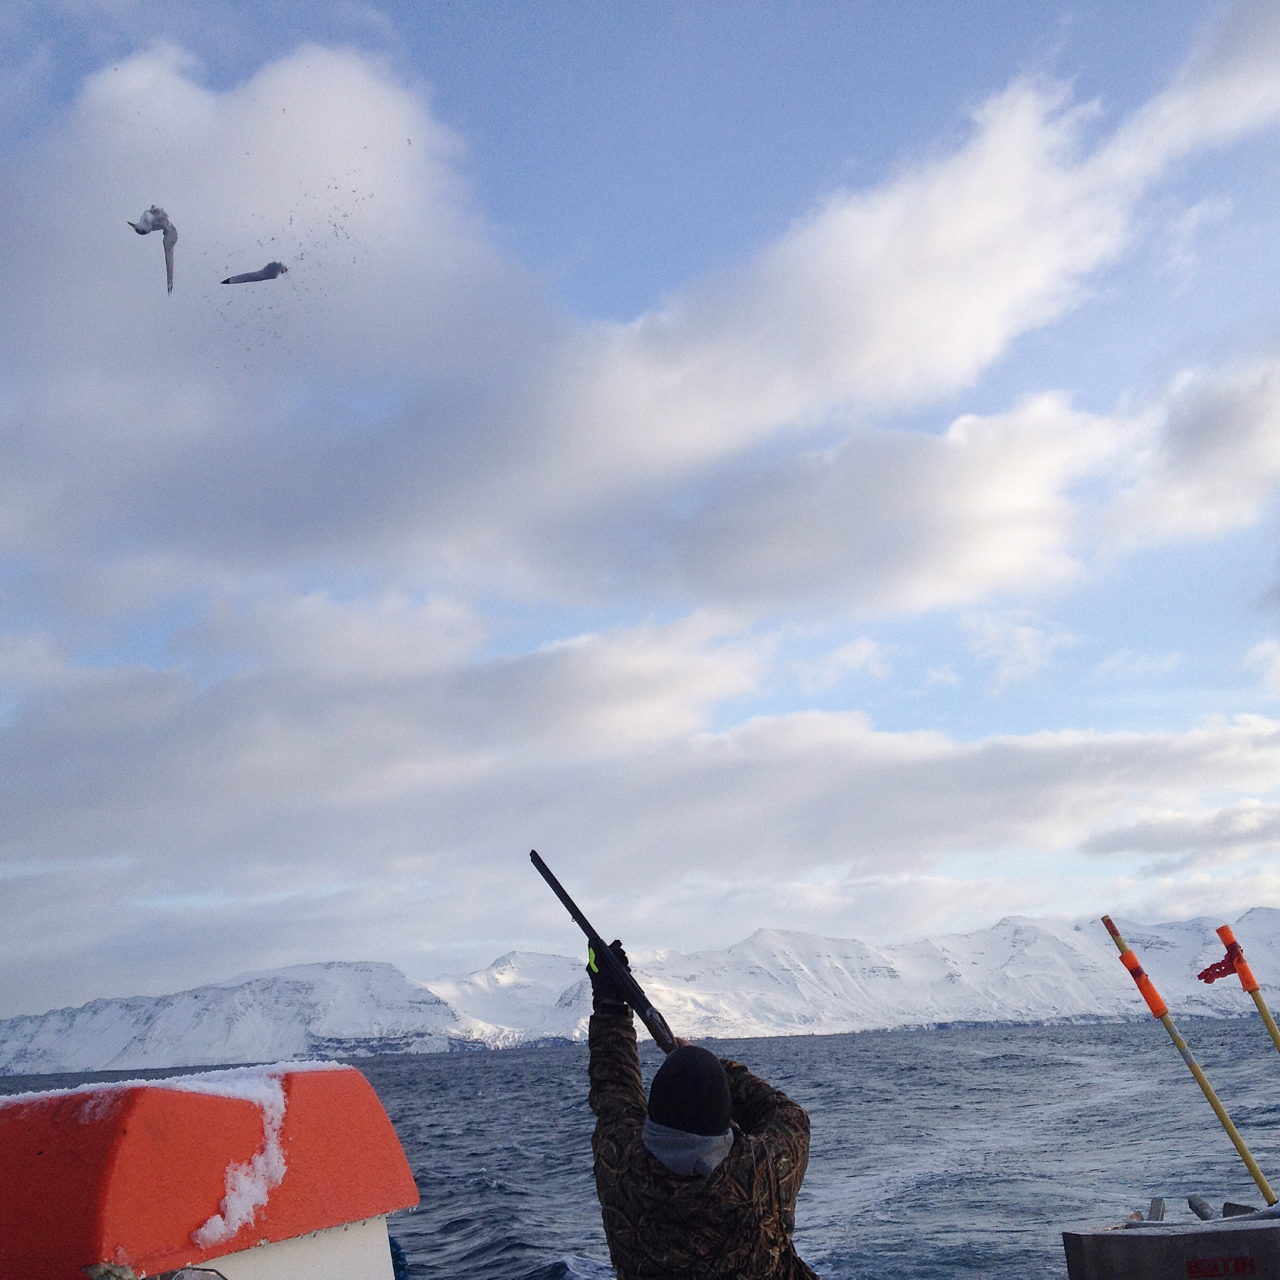 """The Freymundur ÓF-6 was heading home from a dolphin hunt, when she gained a seagull on her tail, swooping over her wake in the hope of some offcuts. Asgeir emerged in his camo, took perfect aim with a shotgun, then burst out laughing. """"He was so close, I blew his wing off!"""" Seagulls are considered a pest in Iceland, and the government pays for Asgeir's ammo. Other gulls arrived to feast on the carcass."""